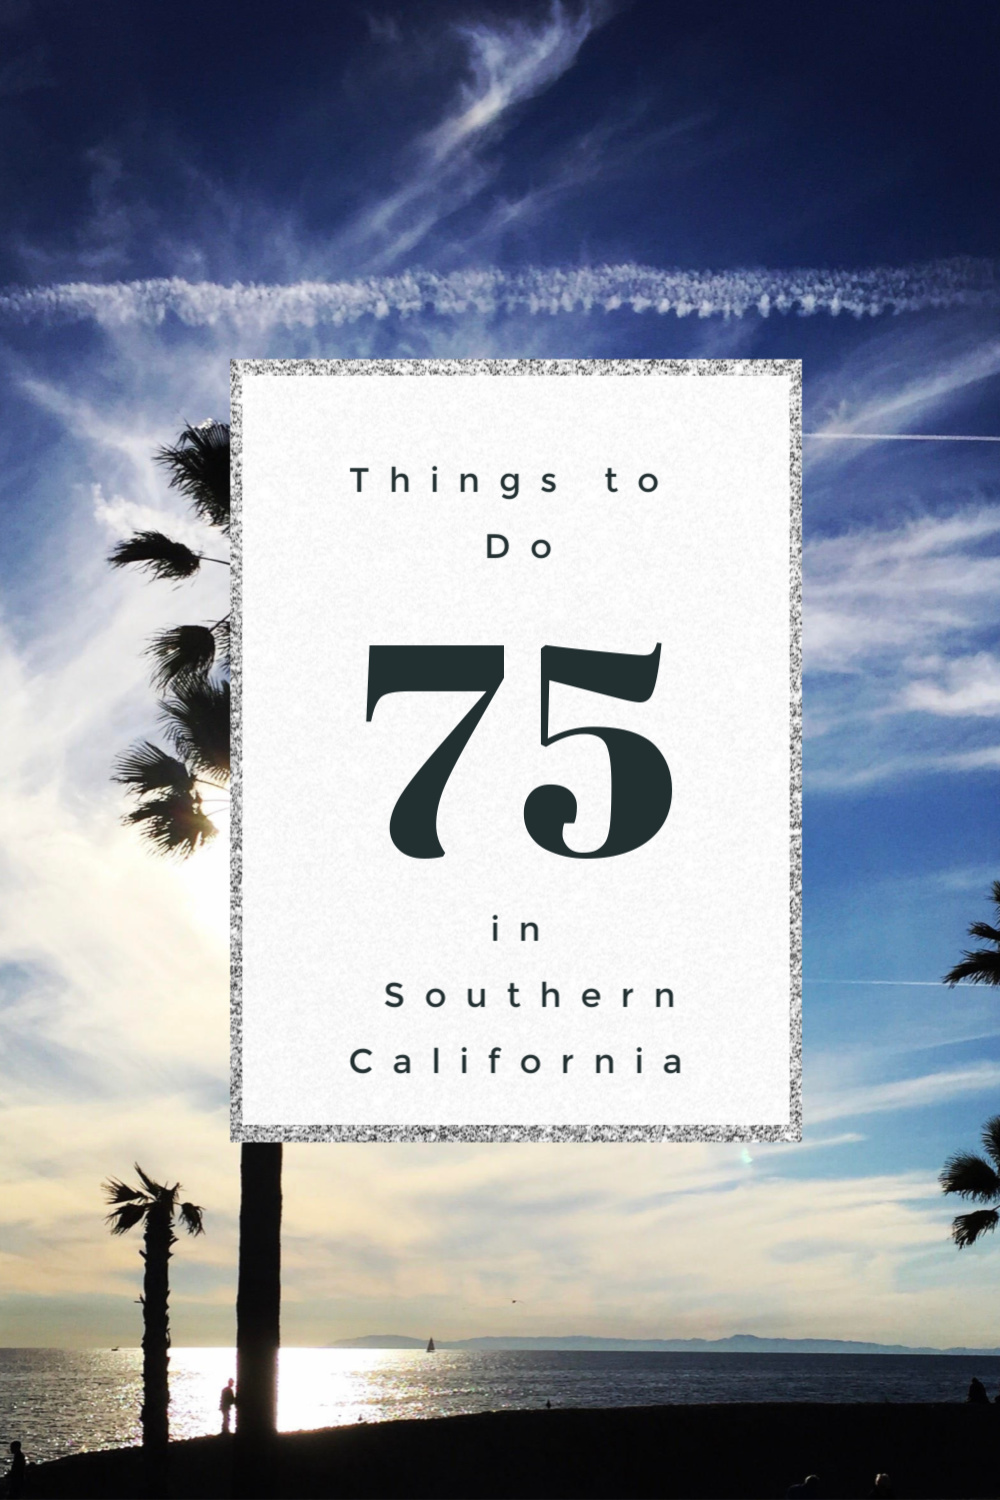 Sunshine, Disney, history and deserts- Read on for the best things to do in Southern California to plan your best California trip. #California #southernCalfornia #thingstodoinCalfornia